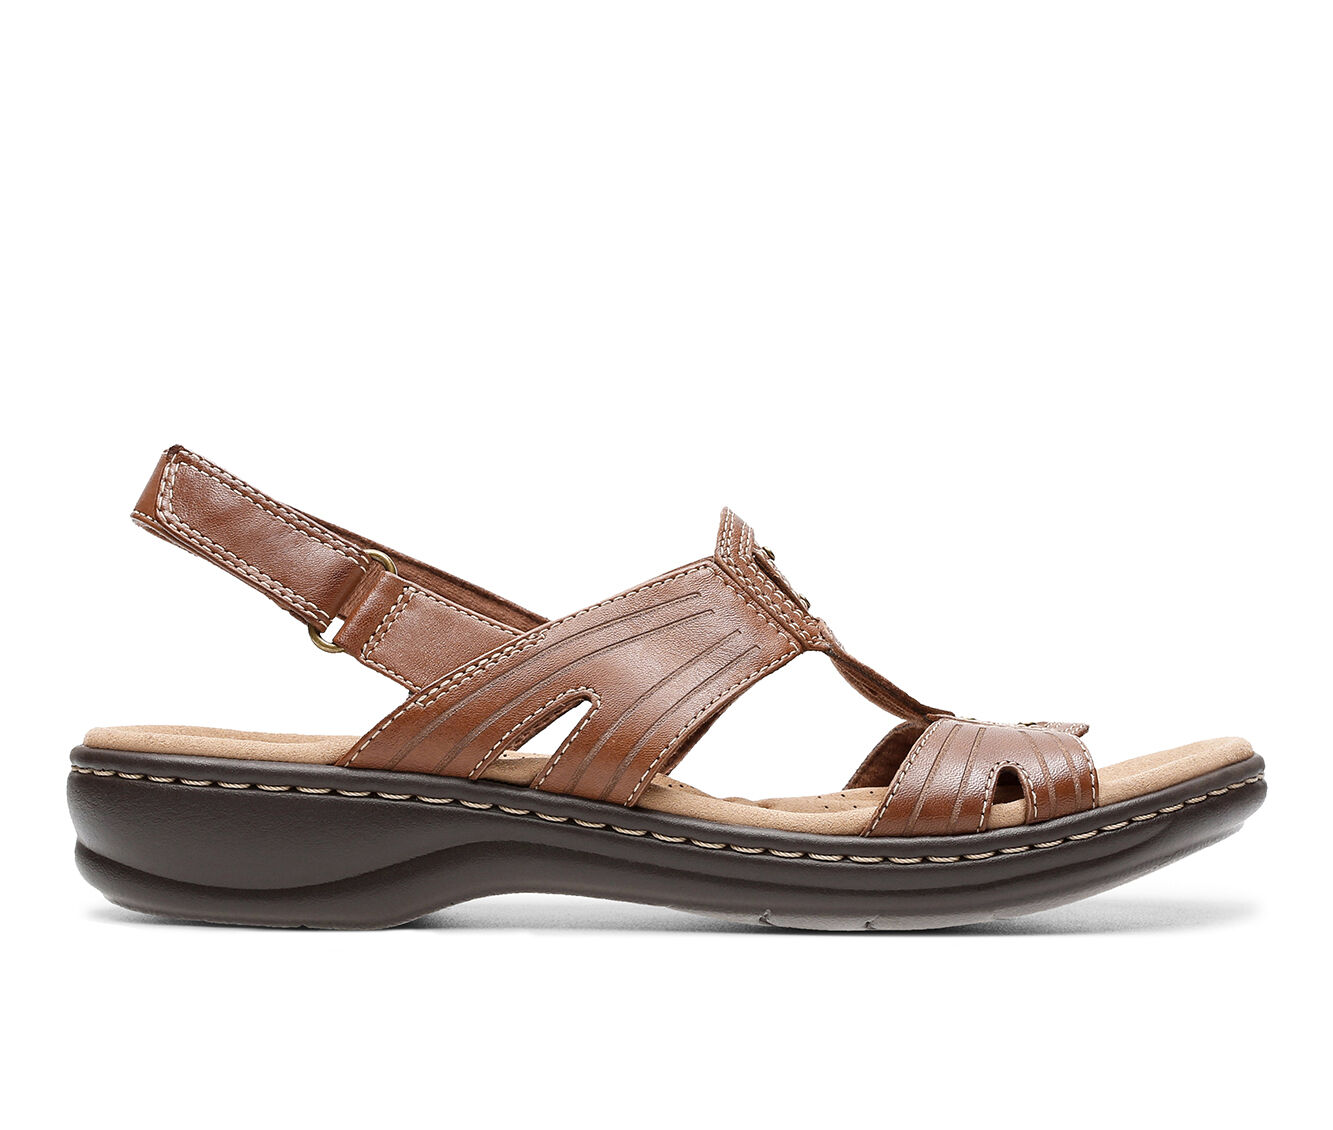 Women's Clarks Leisa Vine Sandals Dark Tan